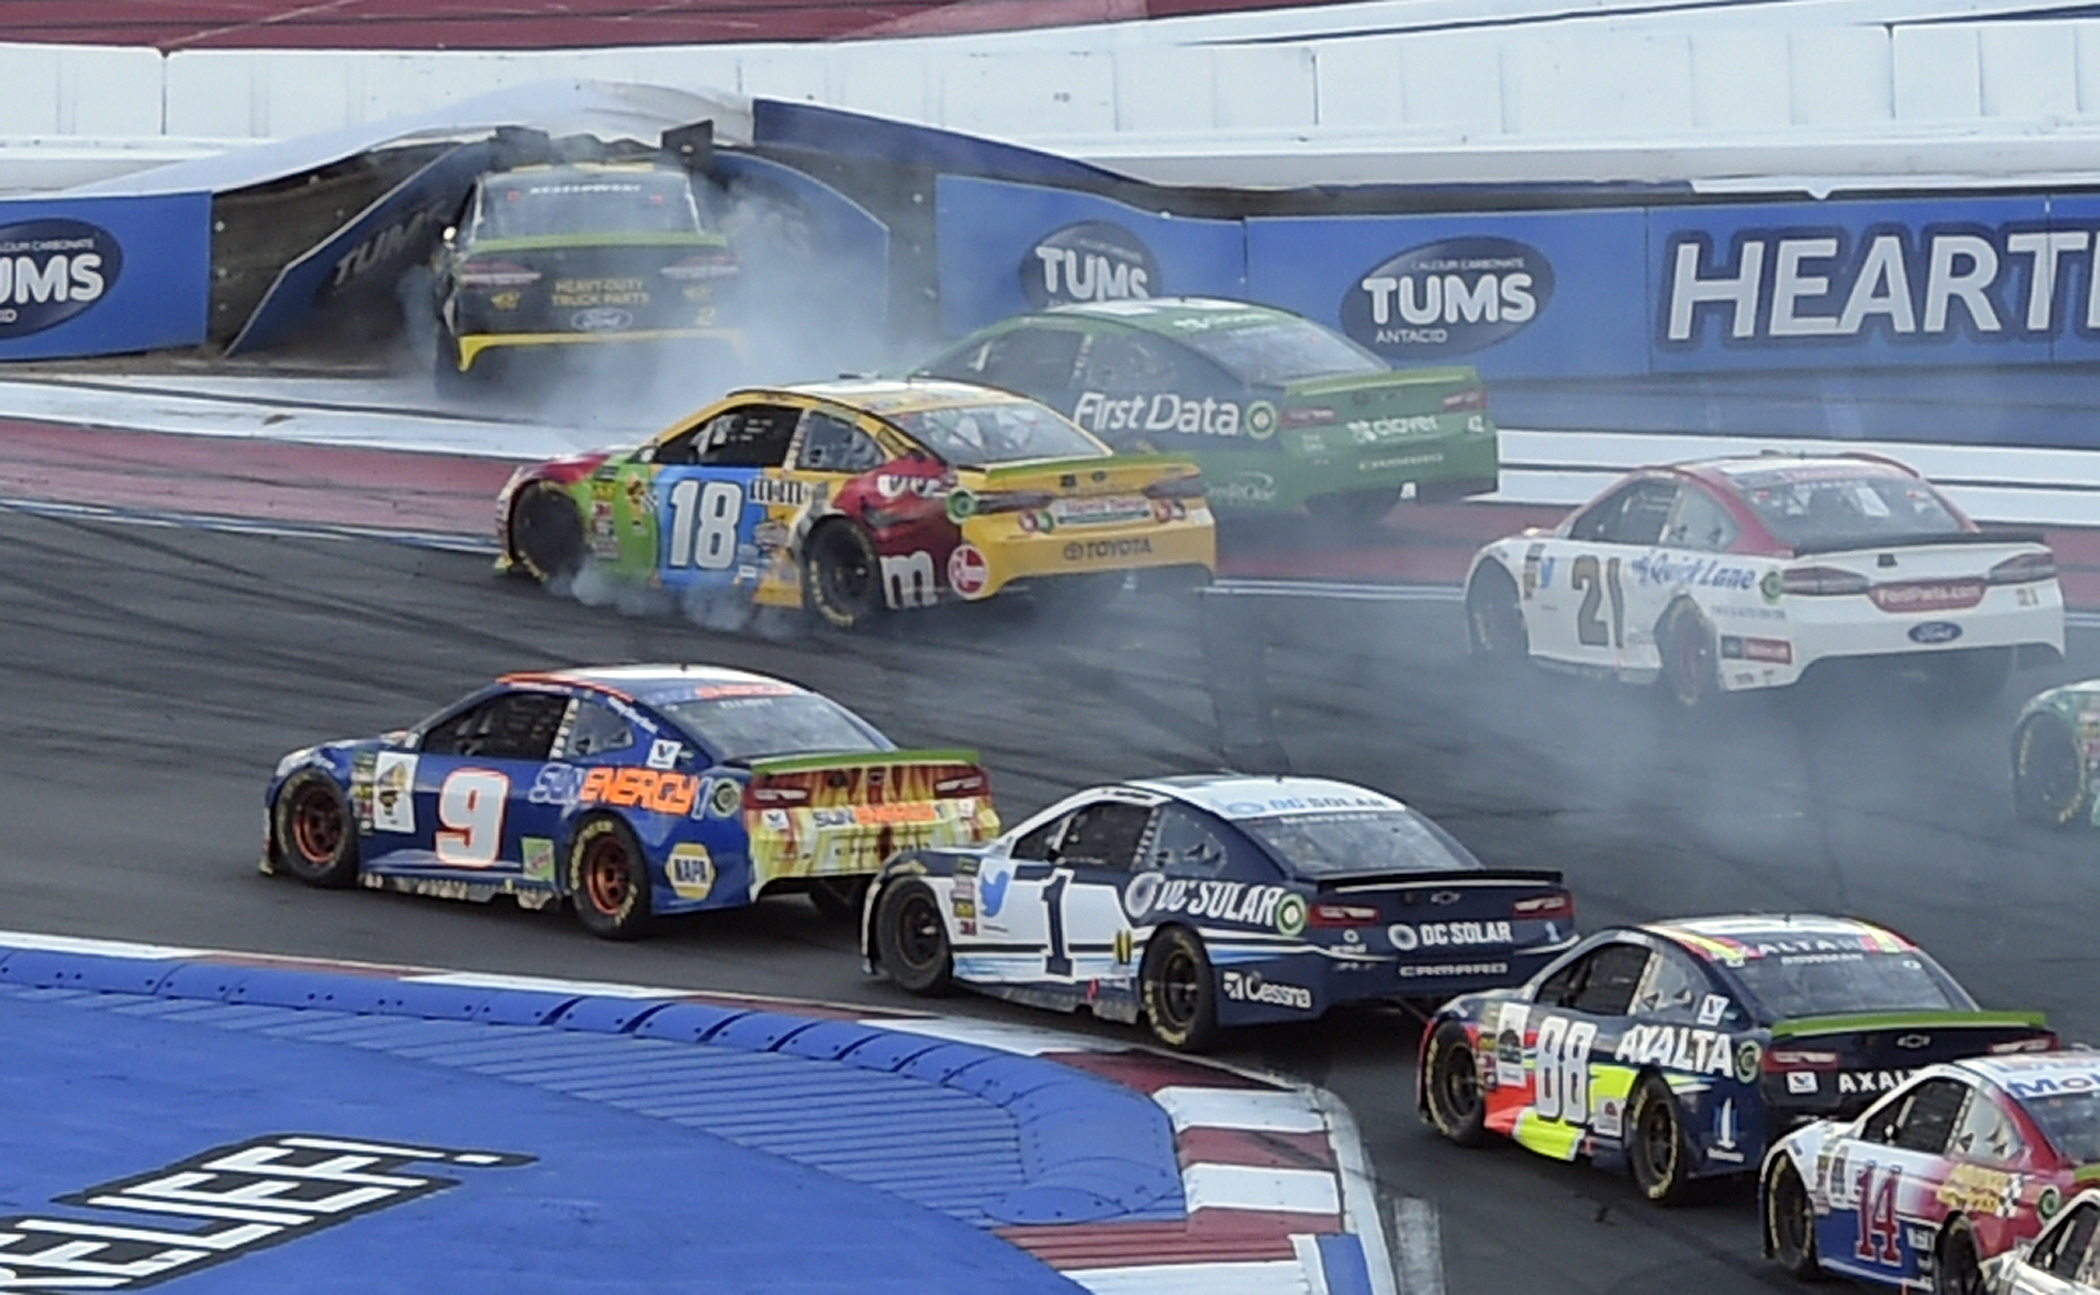 Brad Keselowski (2) runs into the tire wall in Turn 1 as Kyle Larson (42), Kyle Busch (18) and Paul Menard (21) follow during the NASCAR Cup series auto race at Charlotte Motor Speedway in Concord, N.C., Sunday, Sept. 30, 2018. (AP Photo/Mike McCarn)